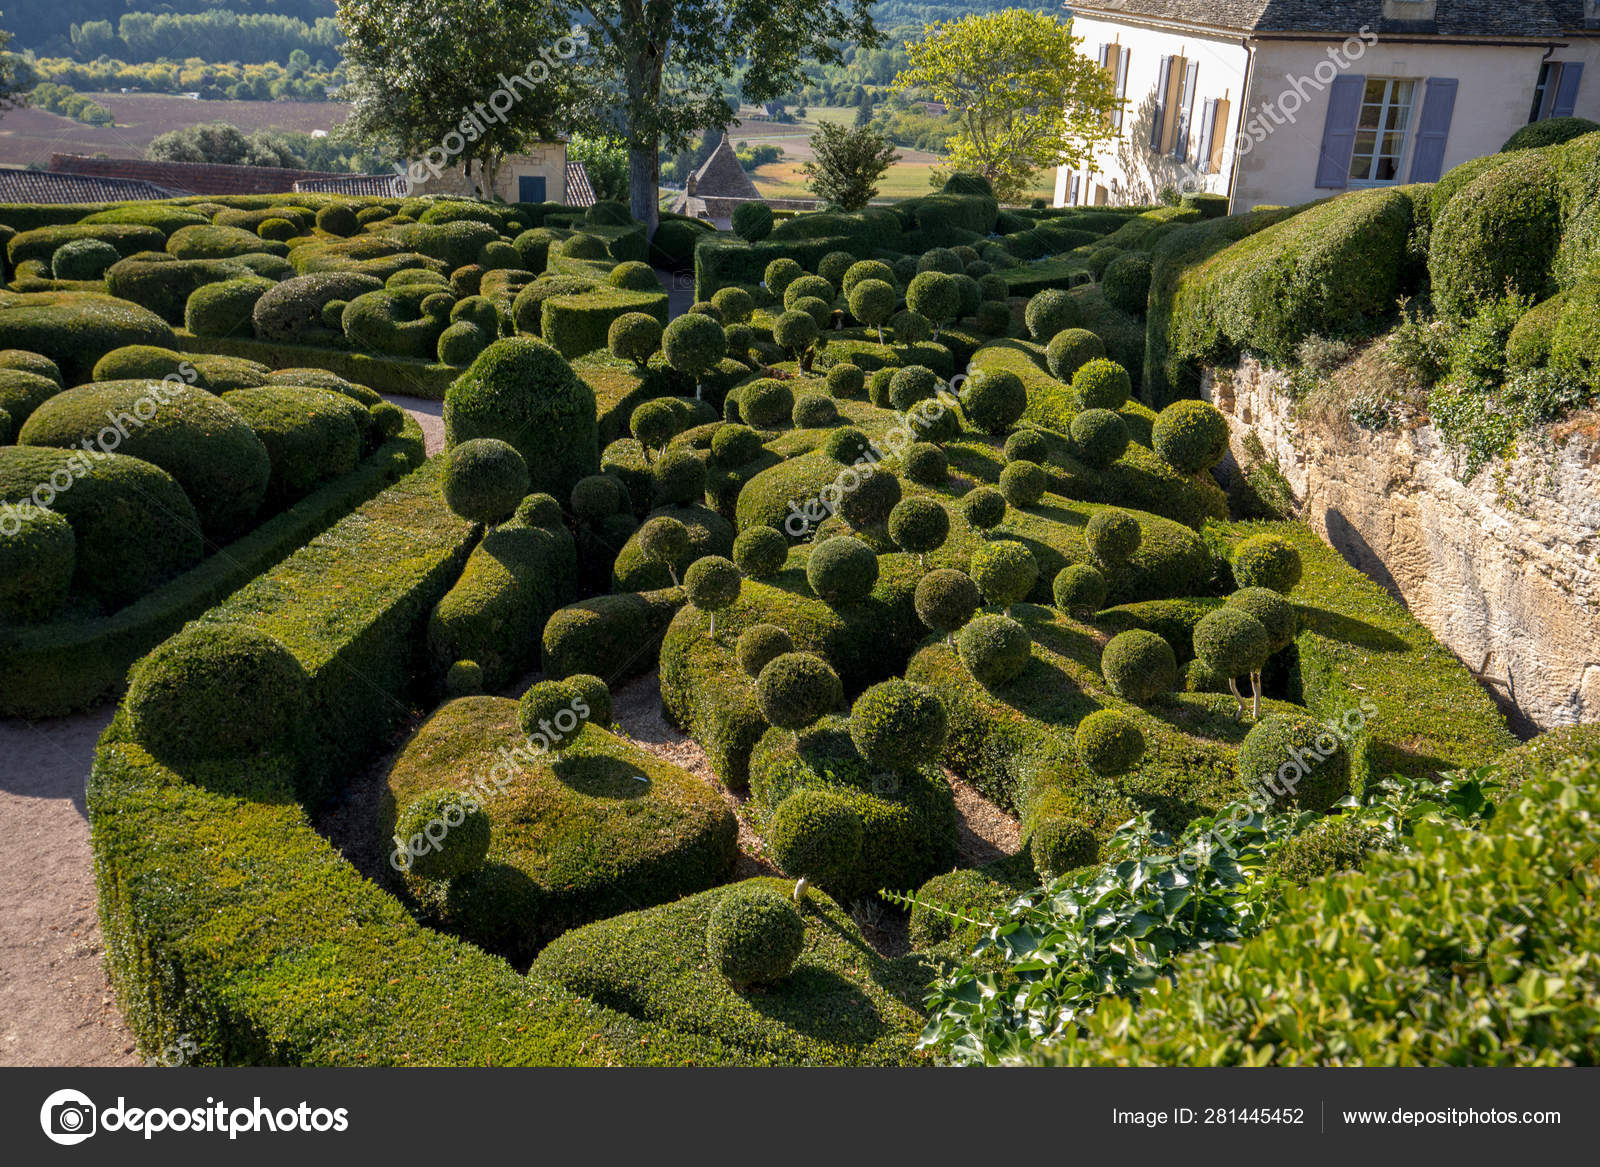 Dordogne France September 2018 Topiary Gardens Jardins concernant Region De France 2018